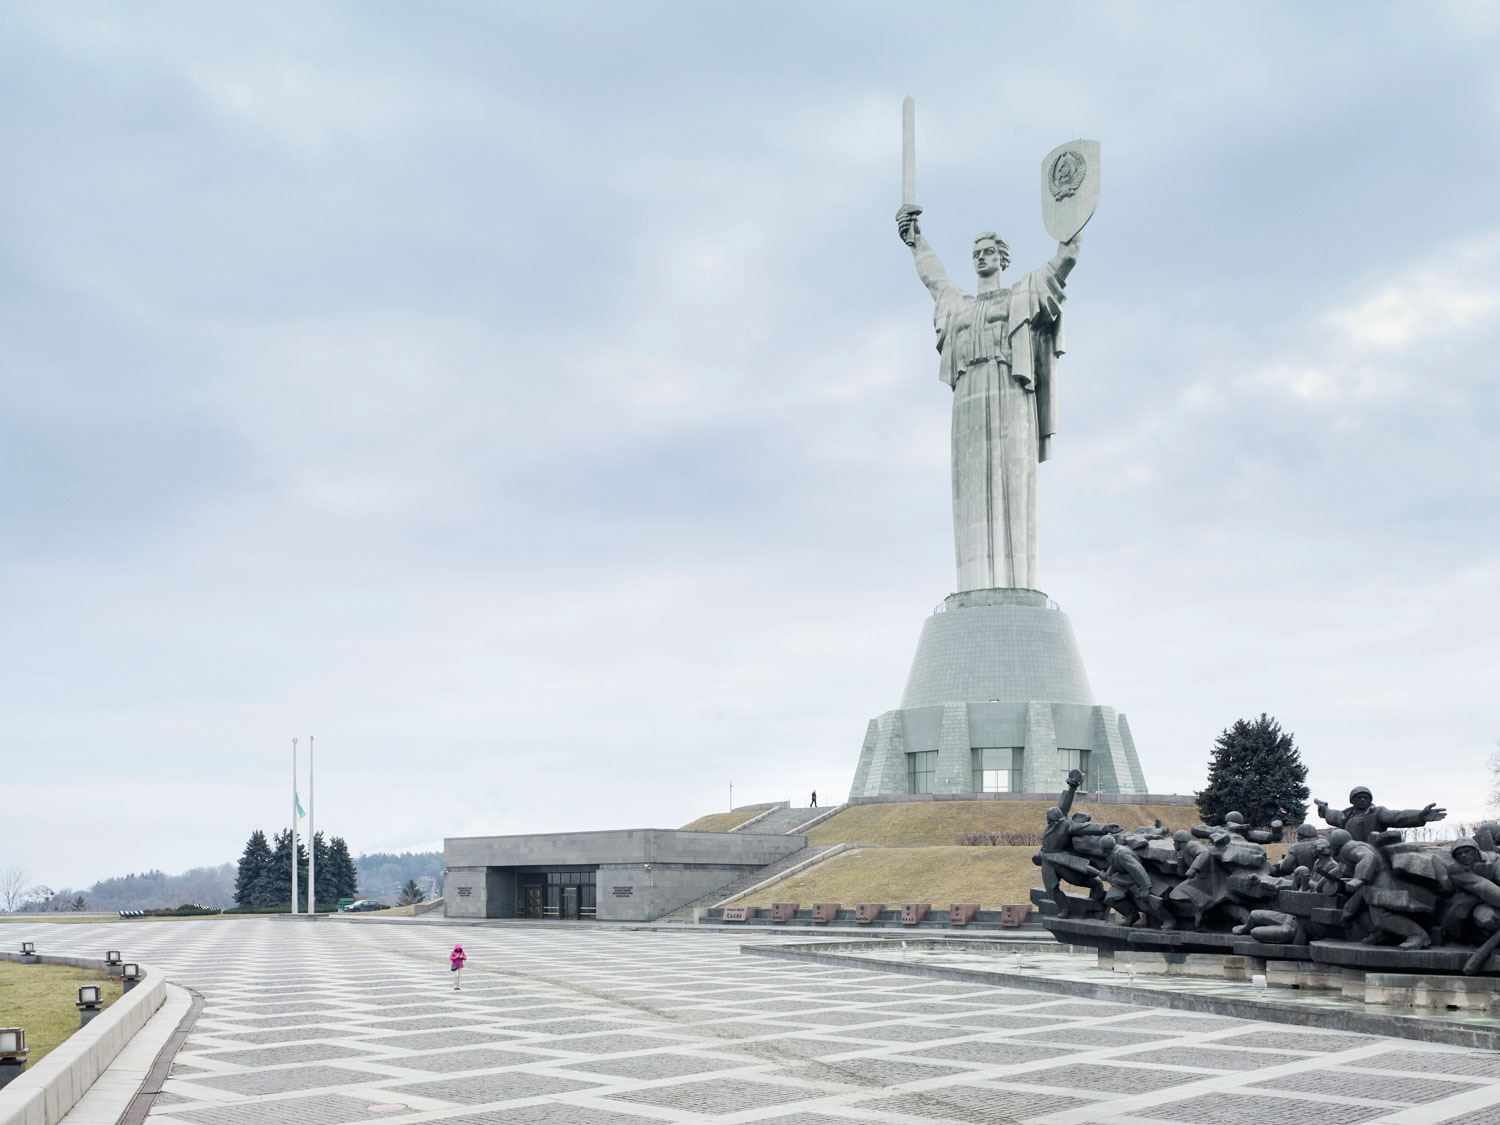 Mother of the Fatherland, 62m (203 ft.), built in 1981. Kiev, Ukraine.